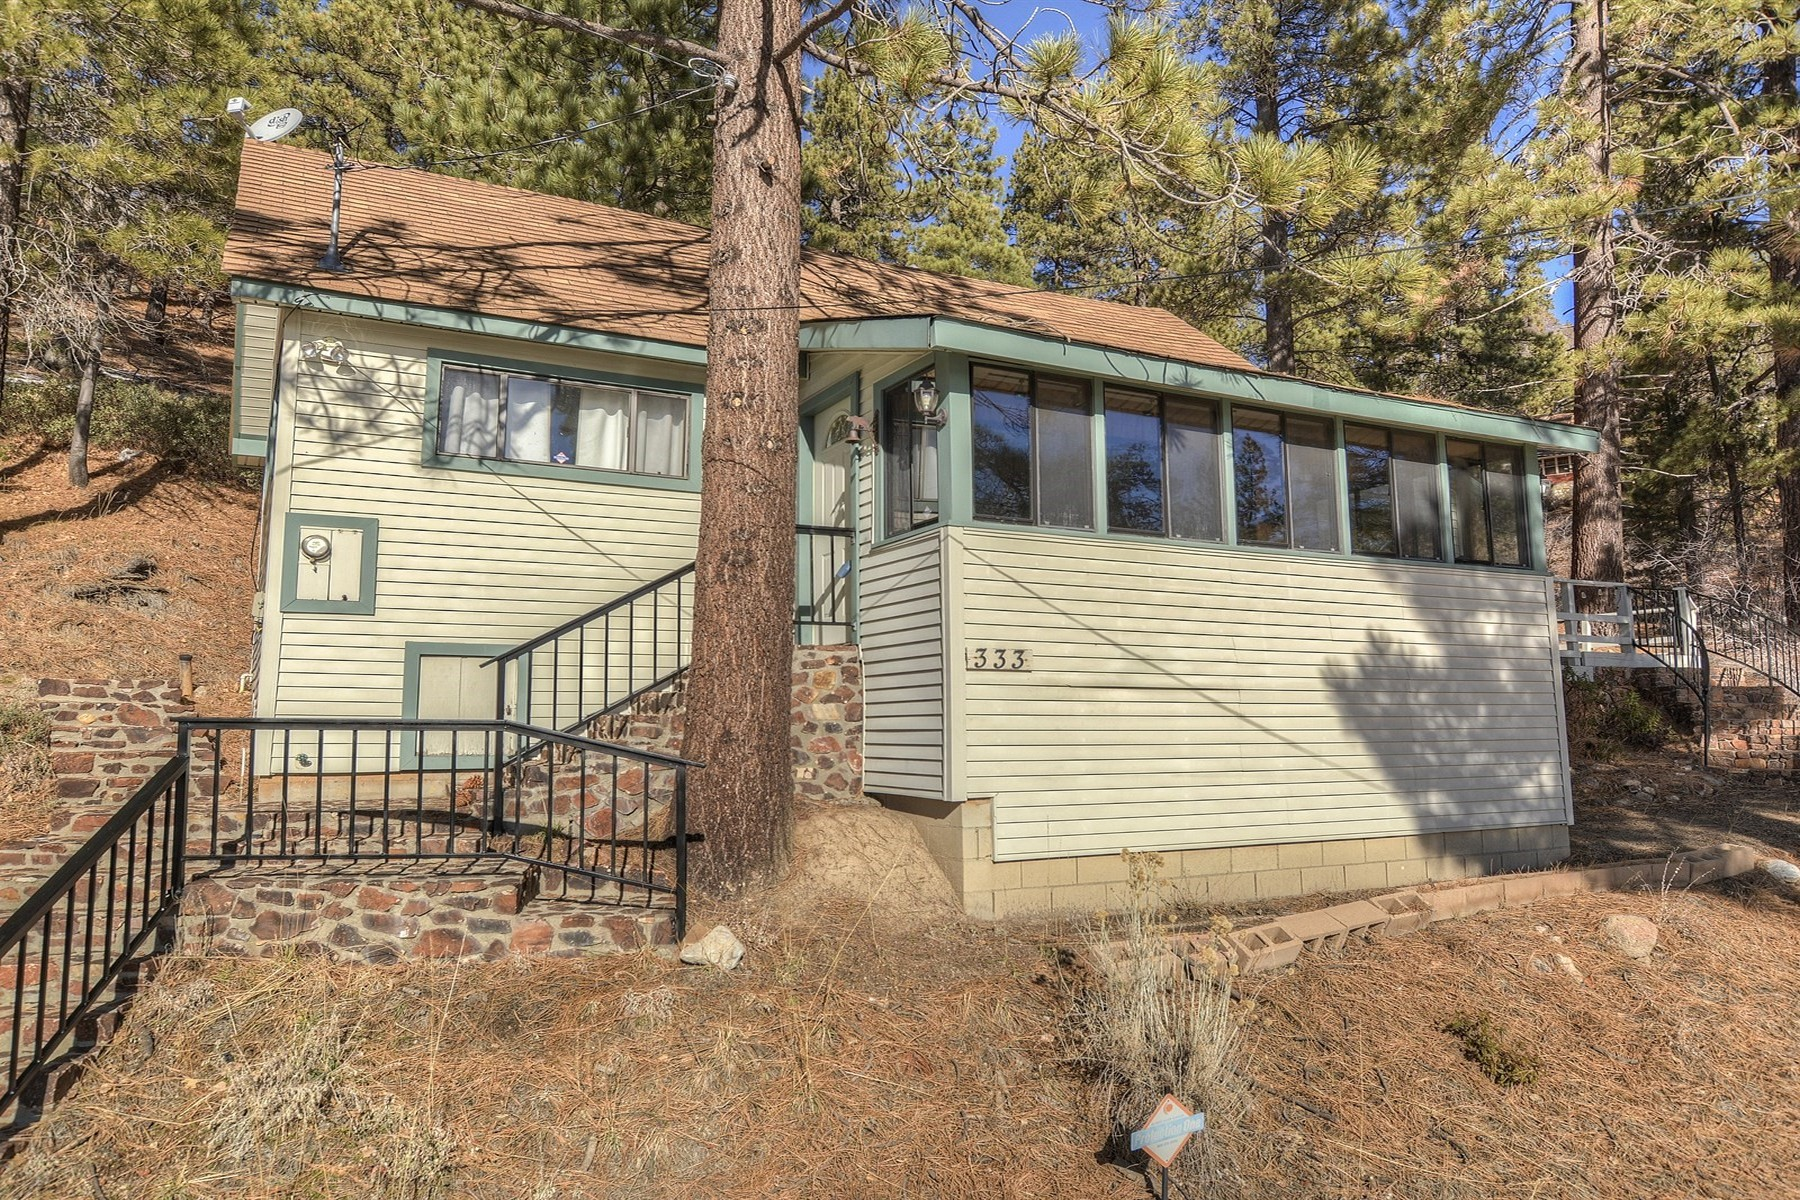 Single Family Home for Sale at Big Bear 333 Pine Kone Fawnskin, California, 92333 United States